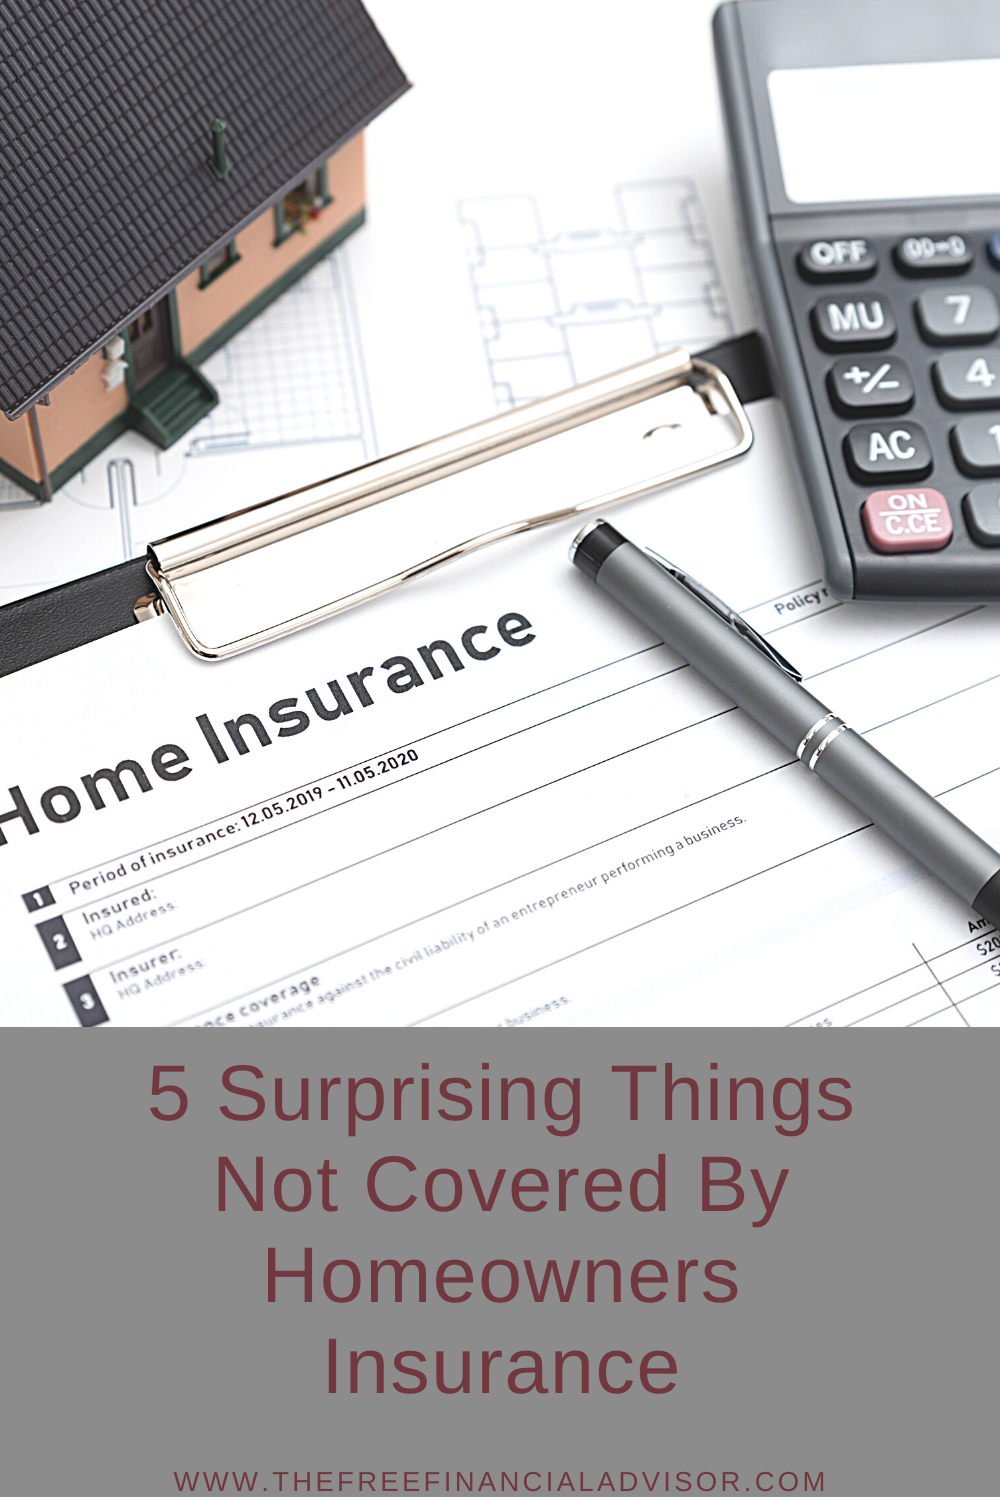 5 Surprising Things Not Covered By Homeowners Insurance